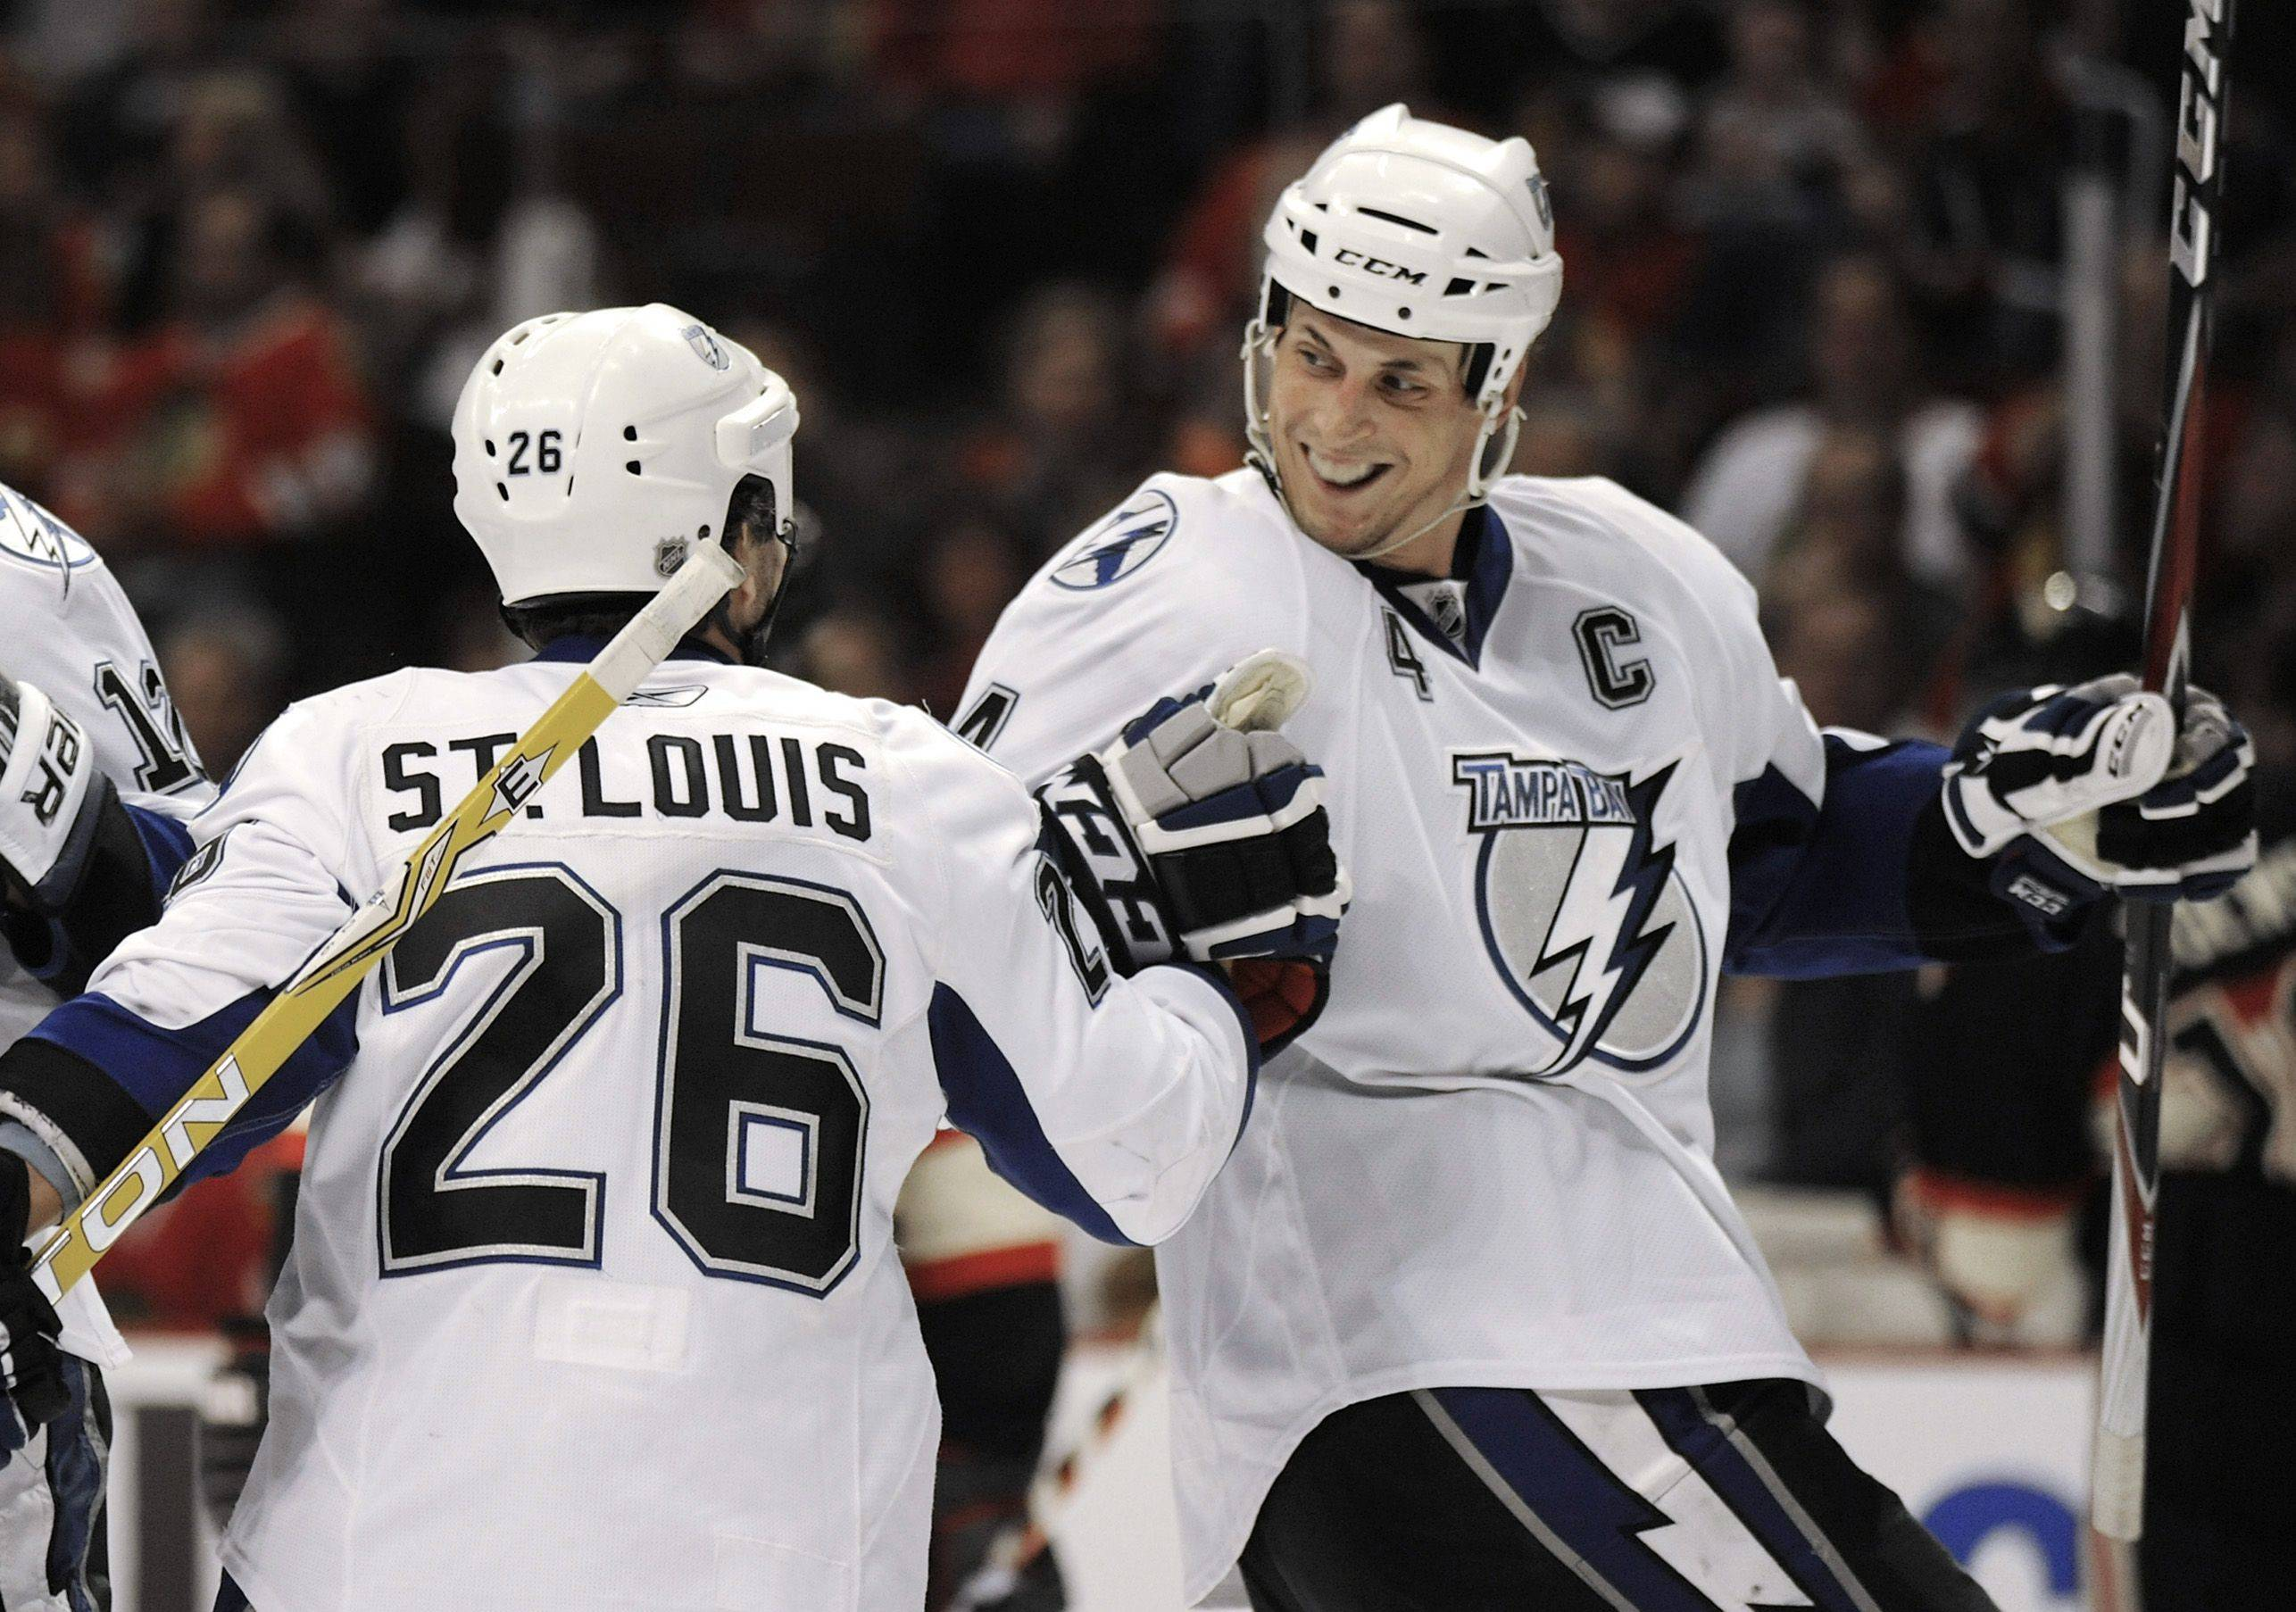 The Lightning's Vincent Lecavalier right, celebrates with teammate Martin St. Louis after scoring Sunday night against the Blackhawks in the first period at the United Center.